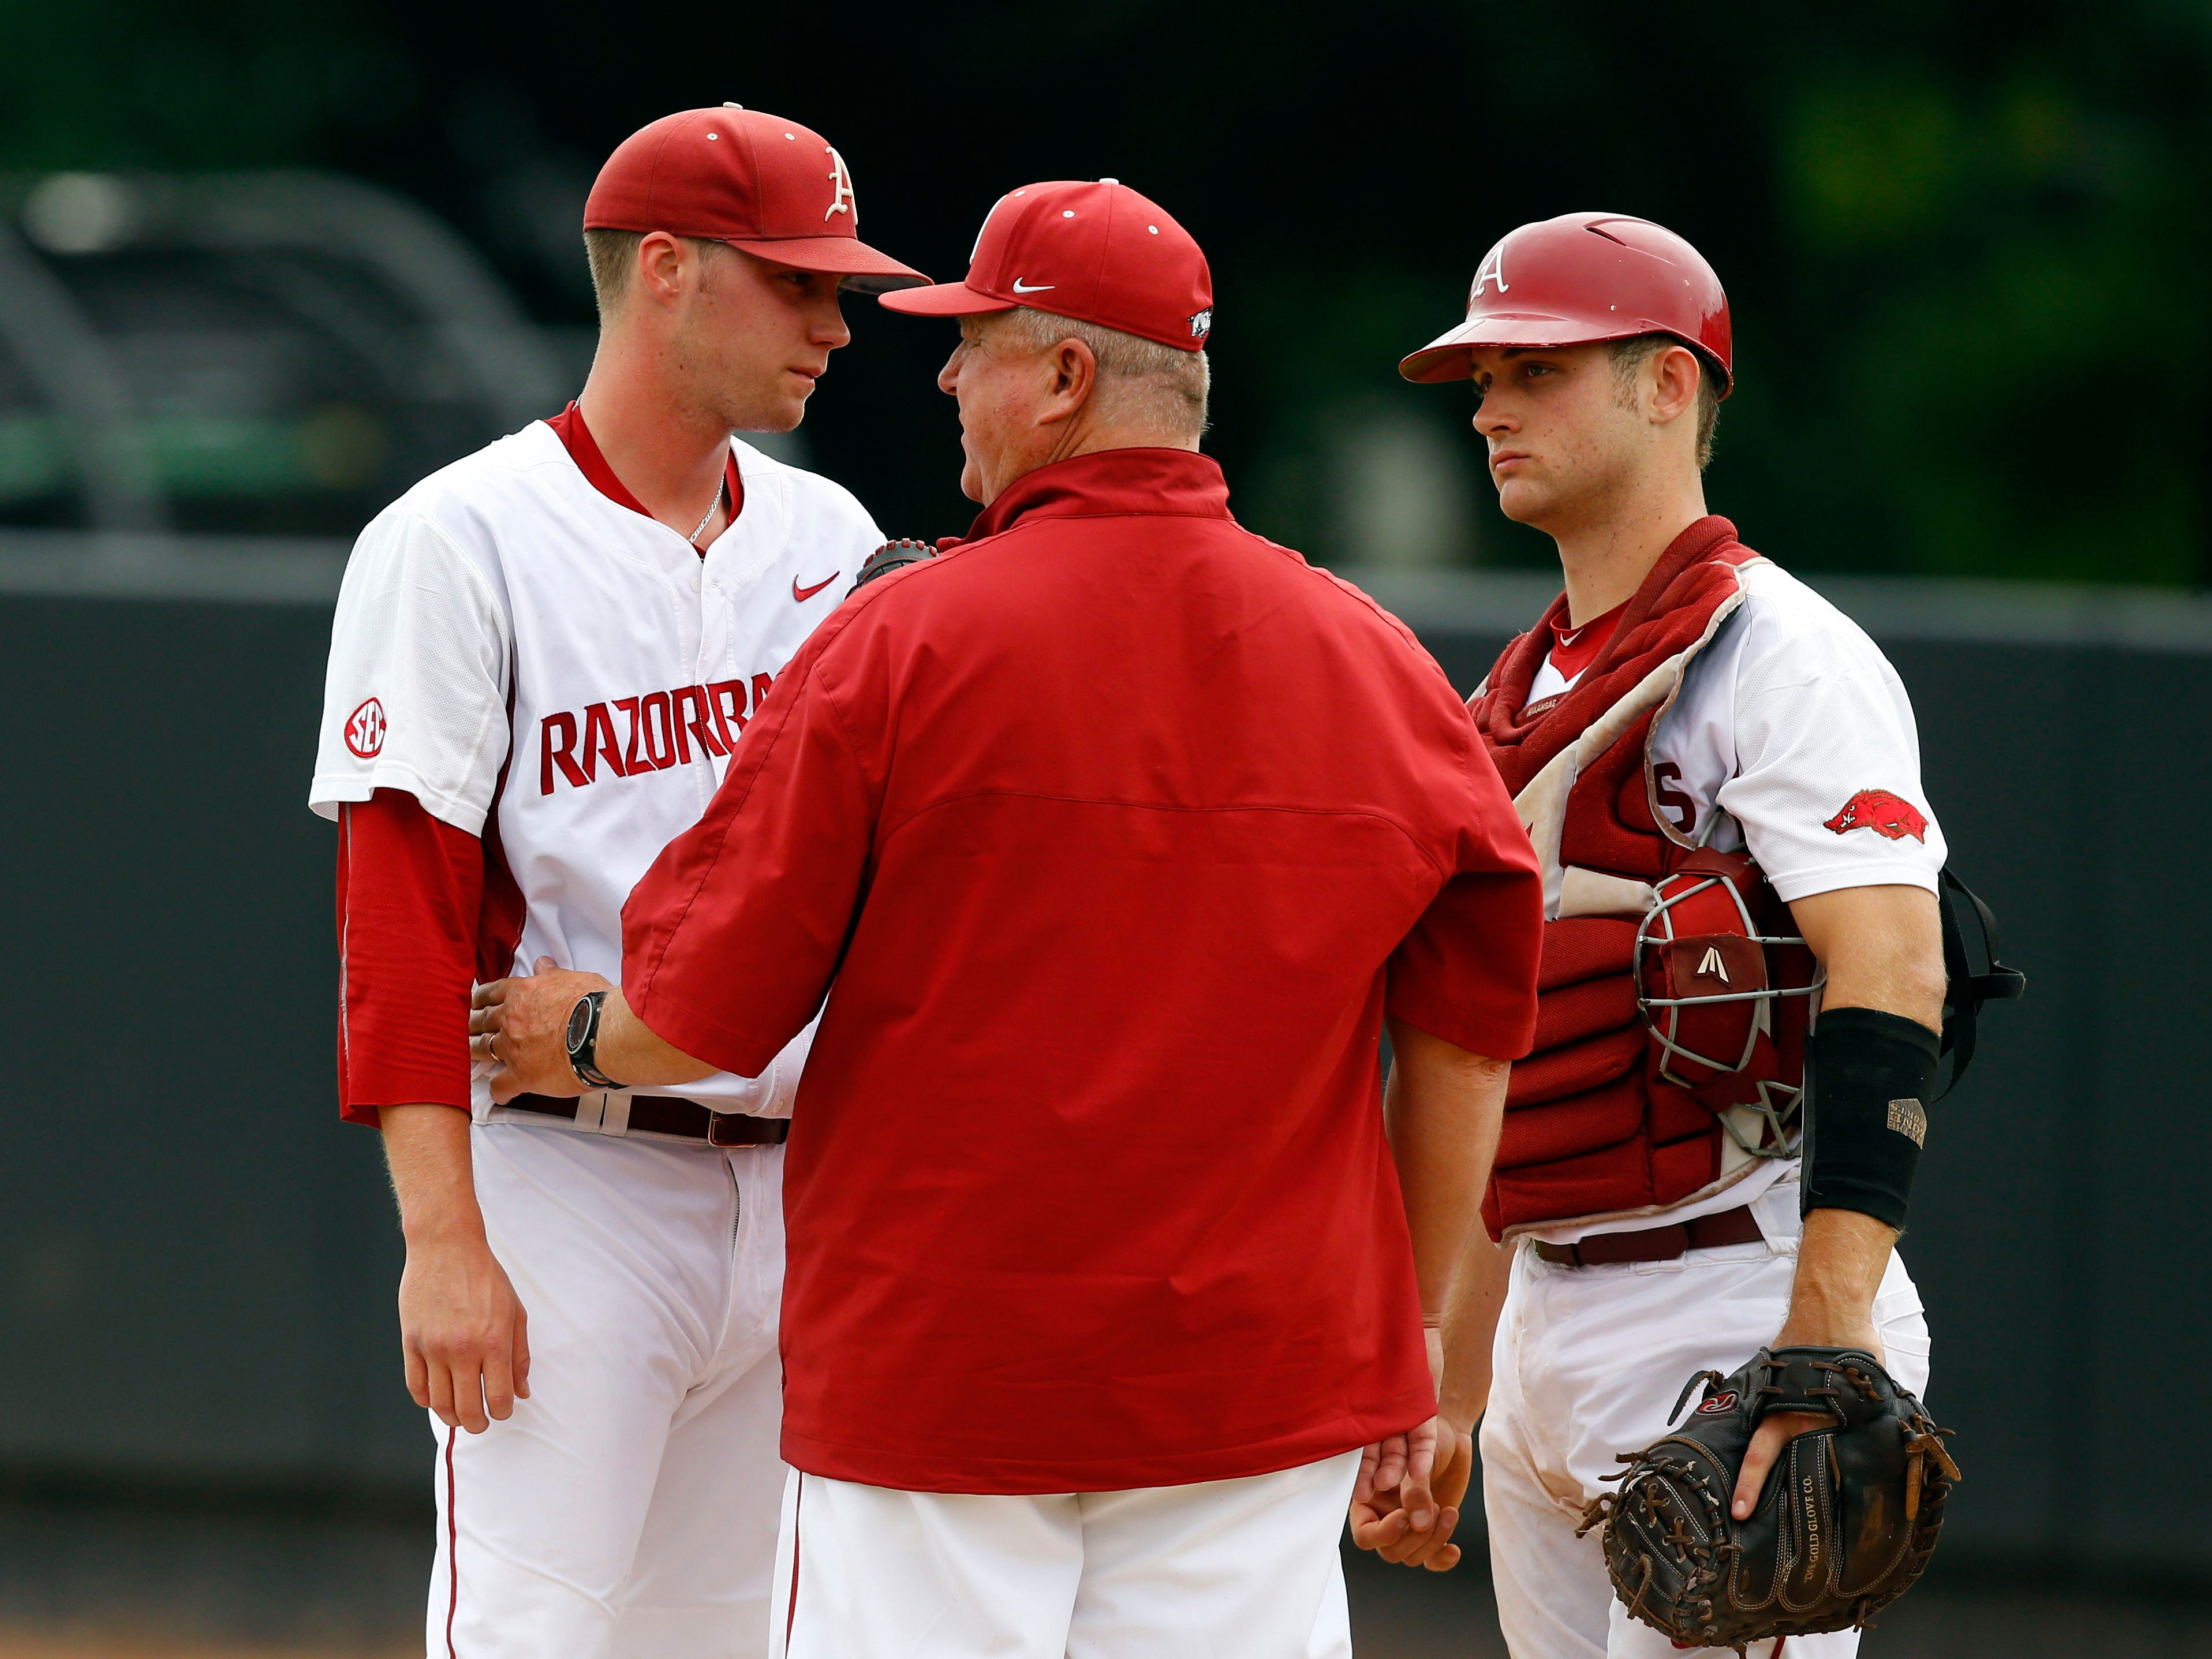 Arkansas pitching coach Dave Jorn, center, talks with starting pitcher Trey Killian and catcher Tucker Pennell in the first inning of a game against Oral Roberts at the Stillwater Regional of the NCAA college baseball tournament in Stillwater, Okla., Friday, May 29, 2015. (AP Photo/Sue Ogrocki)